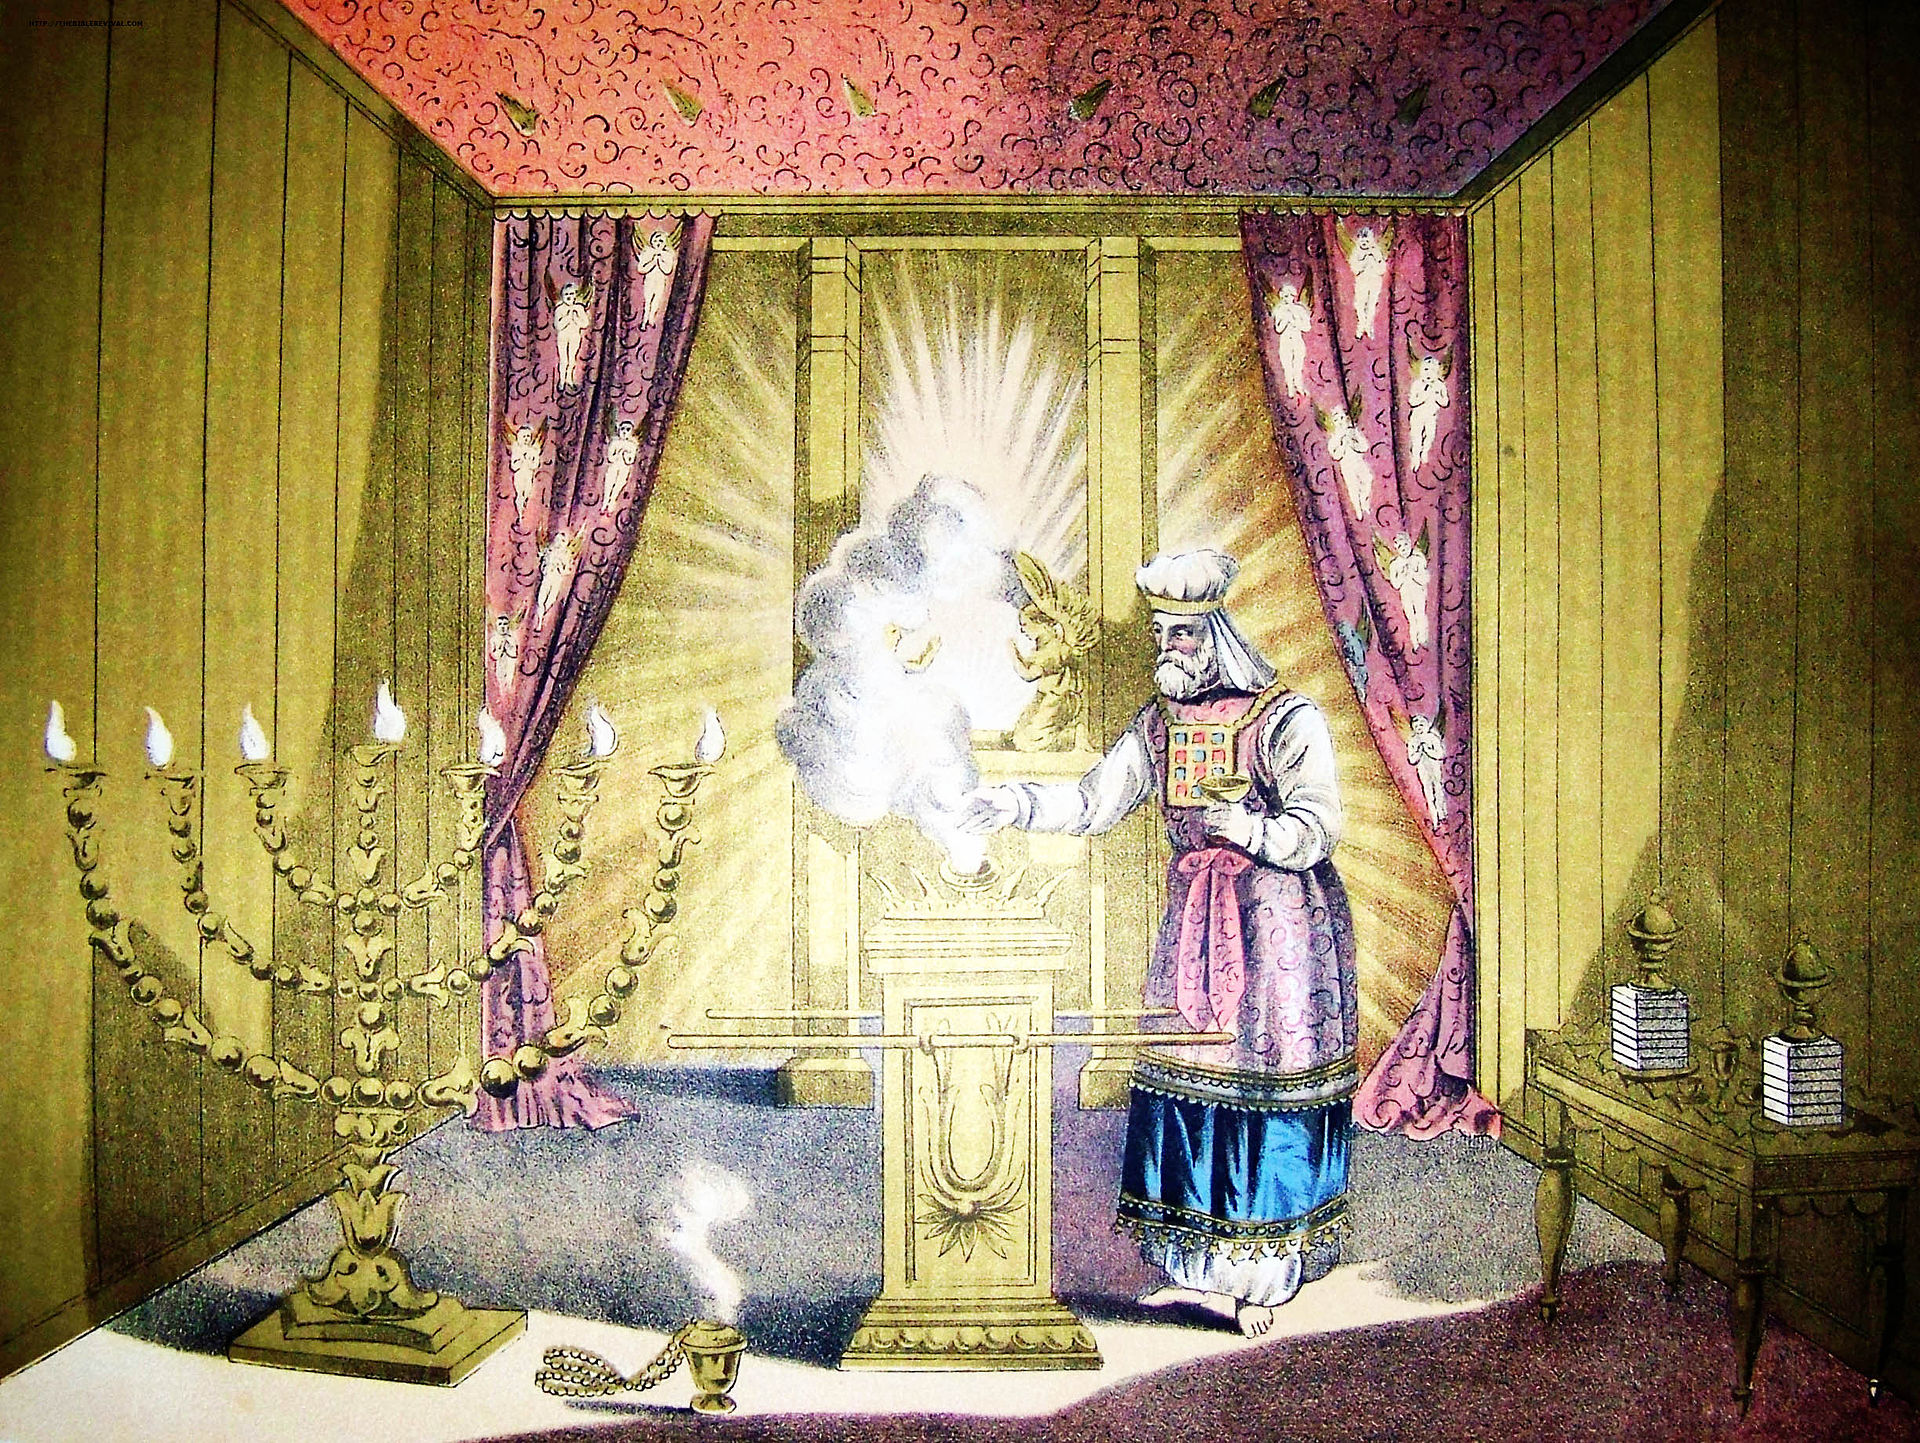 Holman_The_Holy_of_Holies